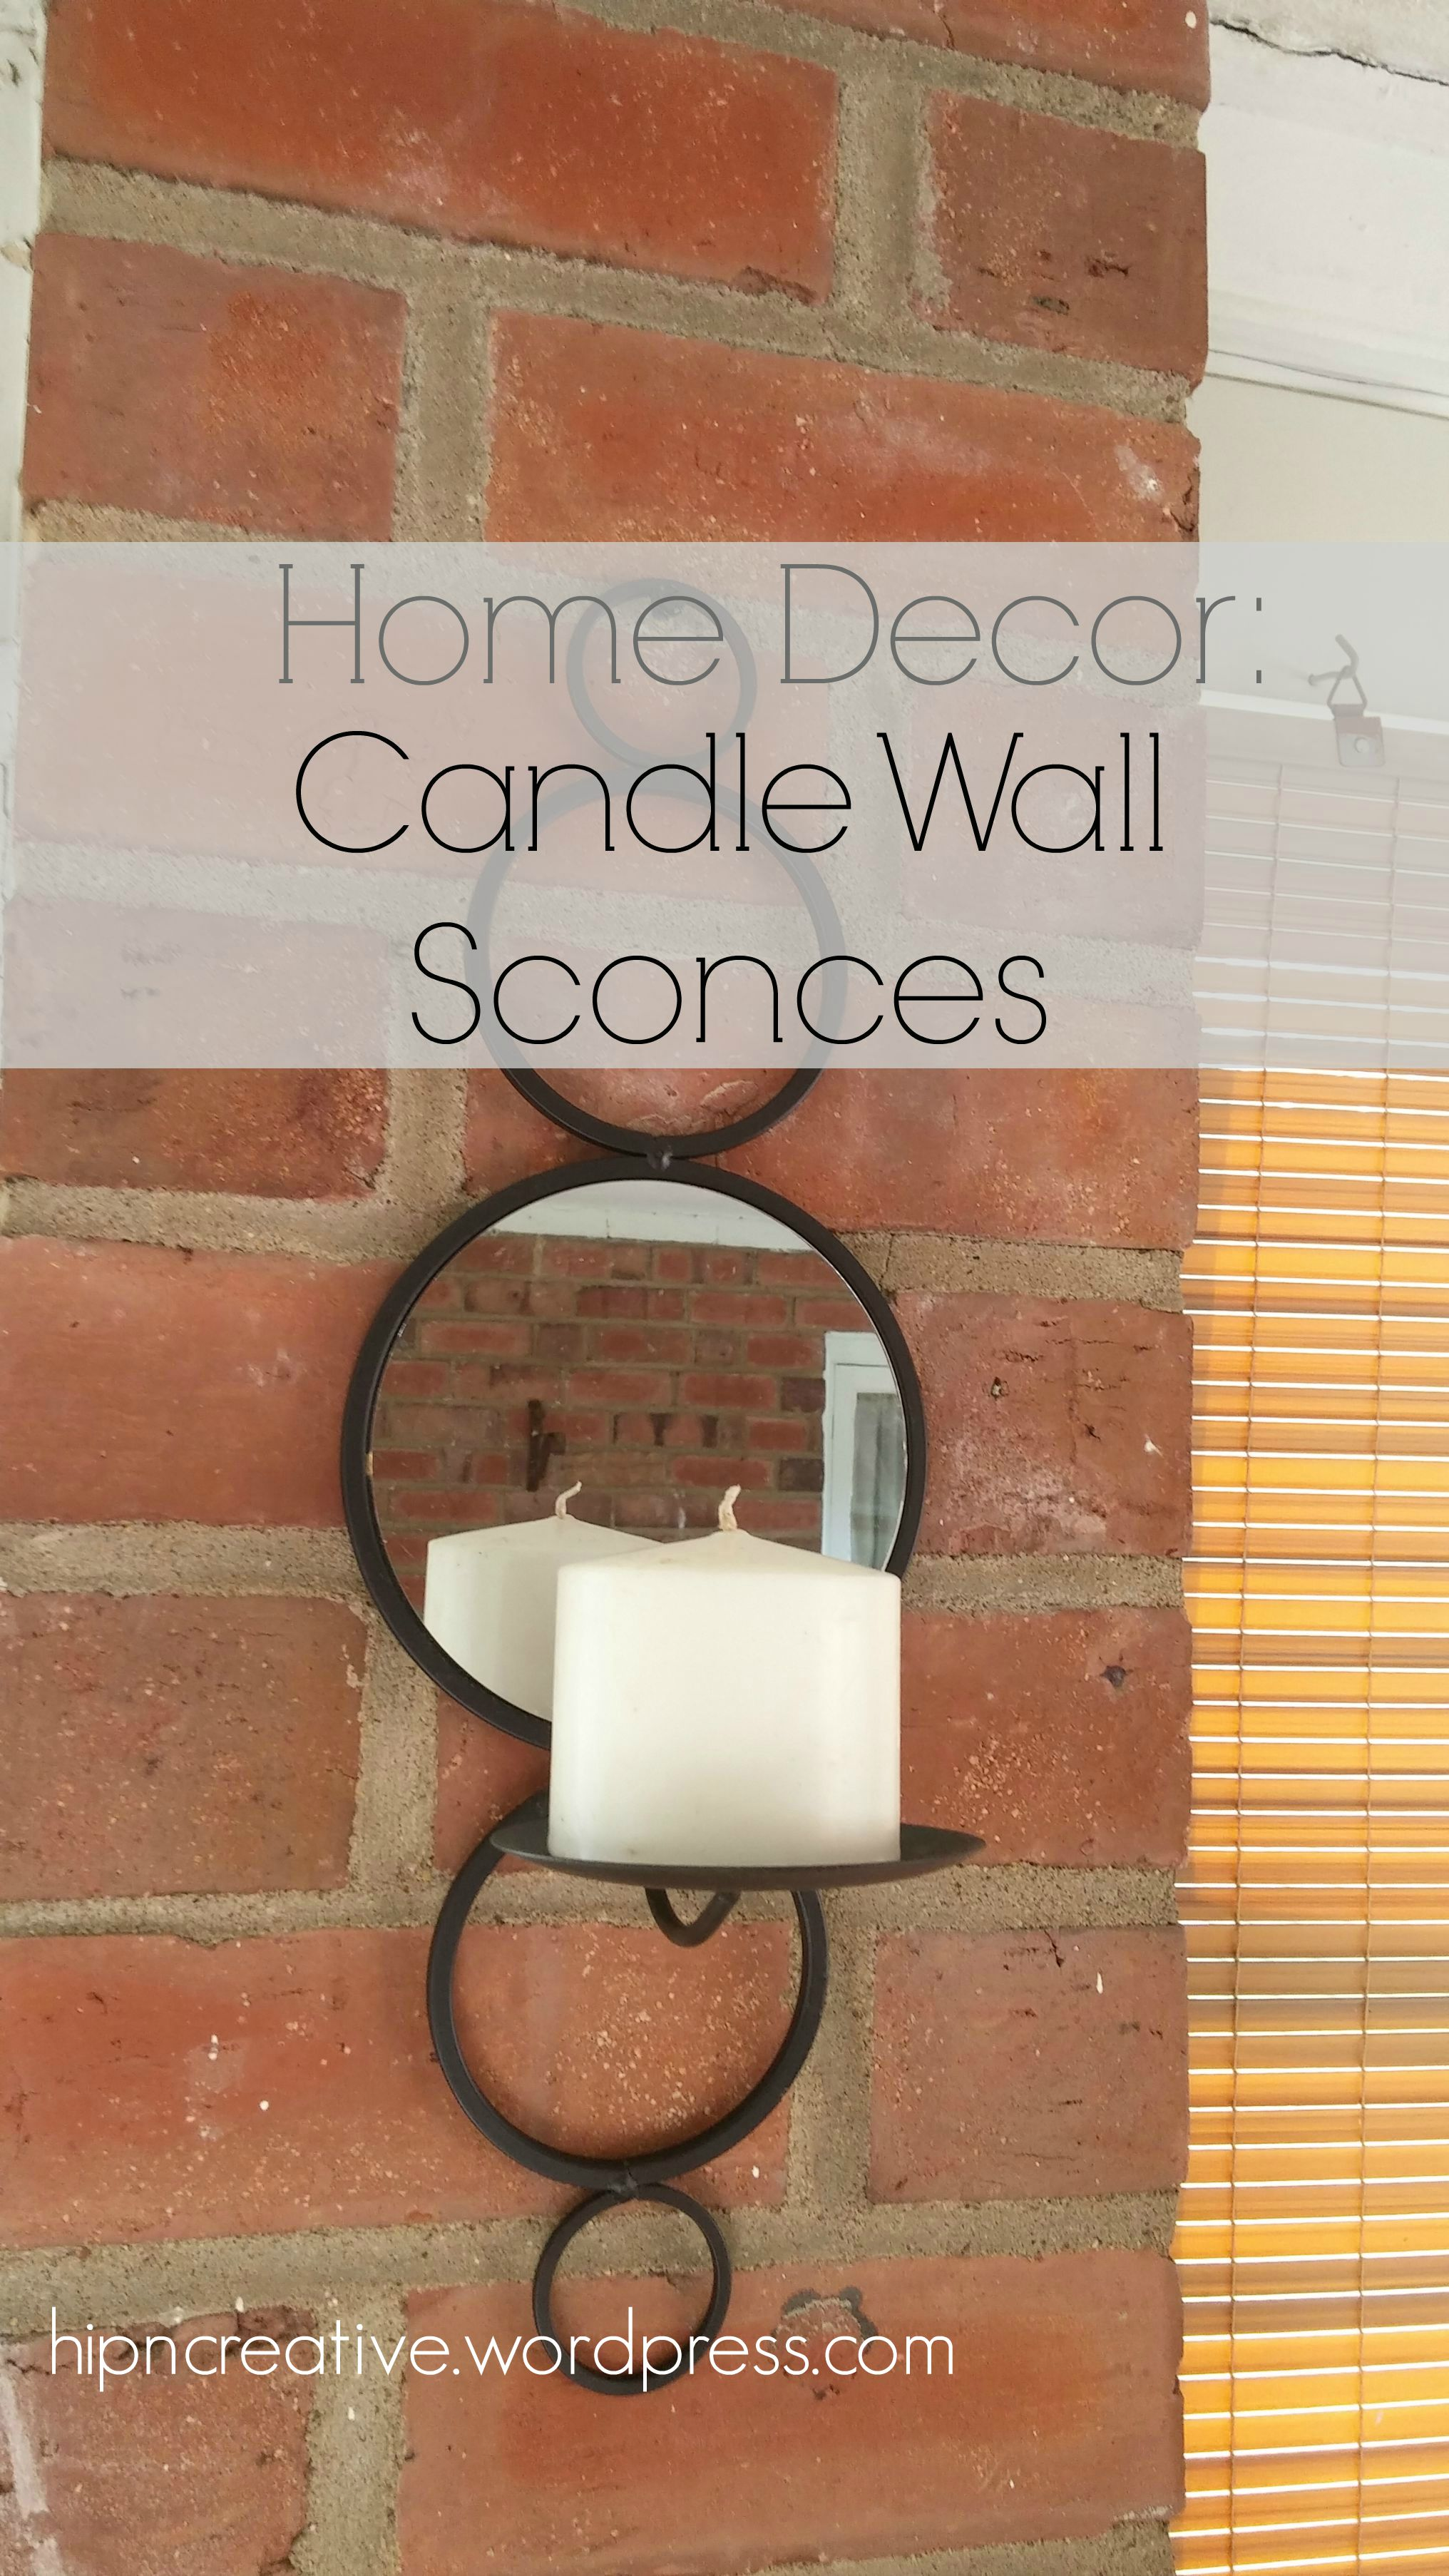 Home Decor Decorating With Candle Wall Sconces Hip N Creative